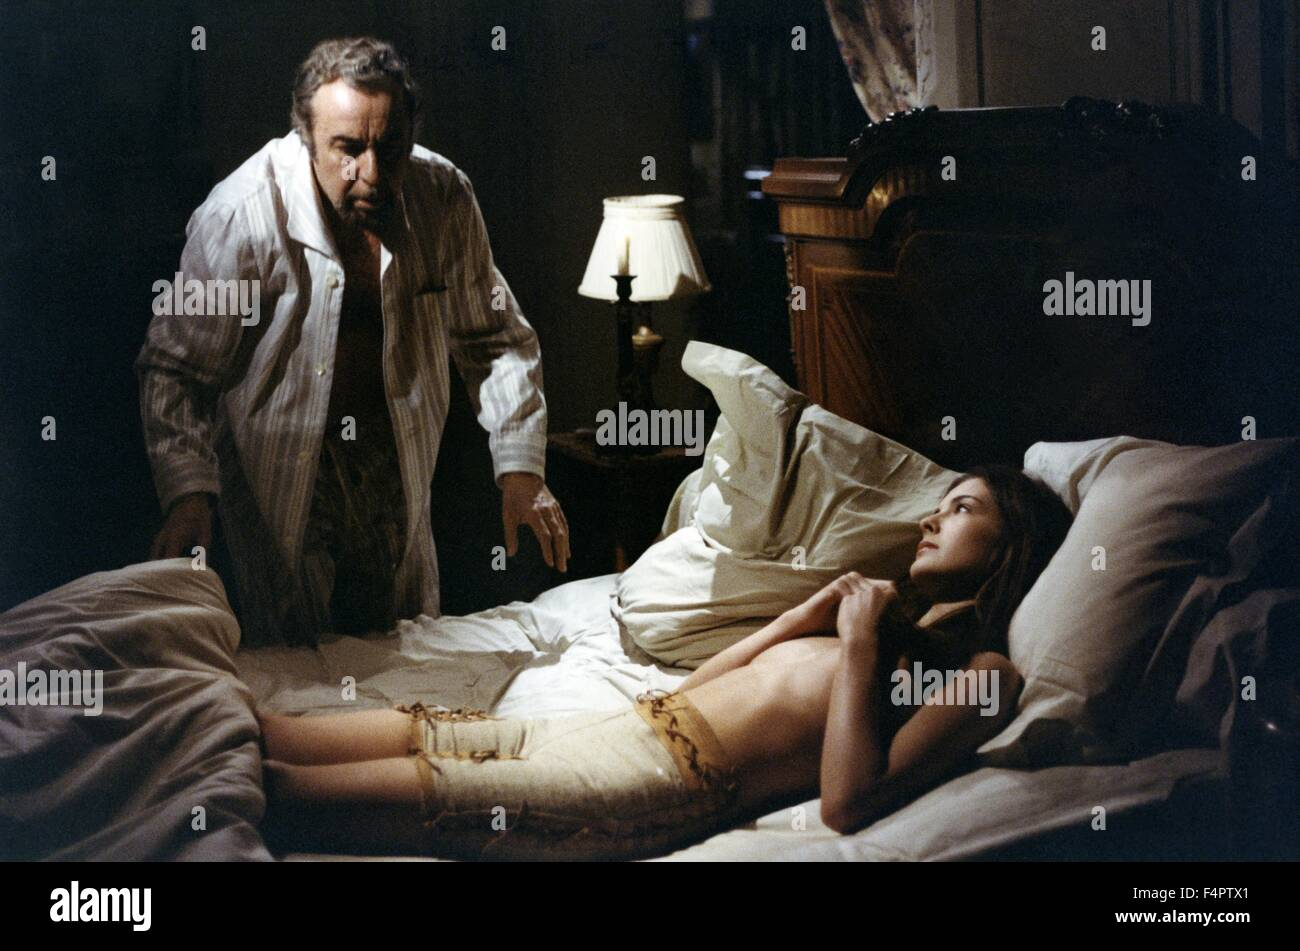 Fernando Rey And Carole Bouquet That Obscure Object Of Desire Stock Photo Alamy That Obscure Object of Desire